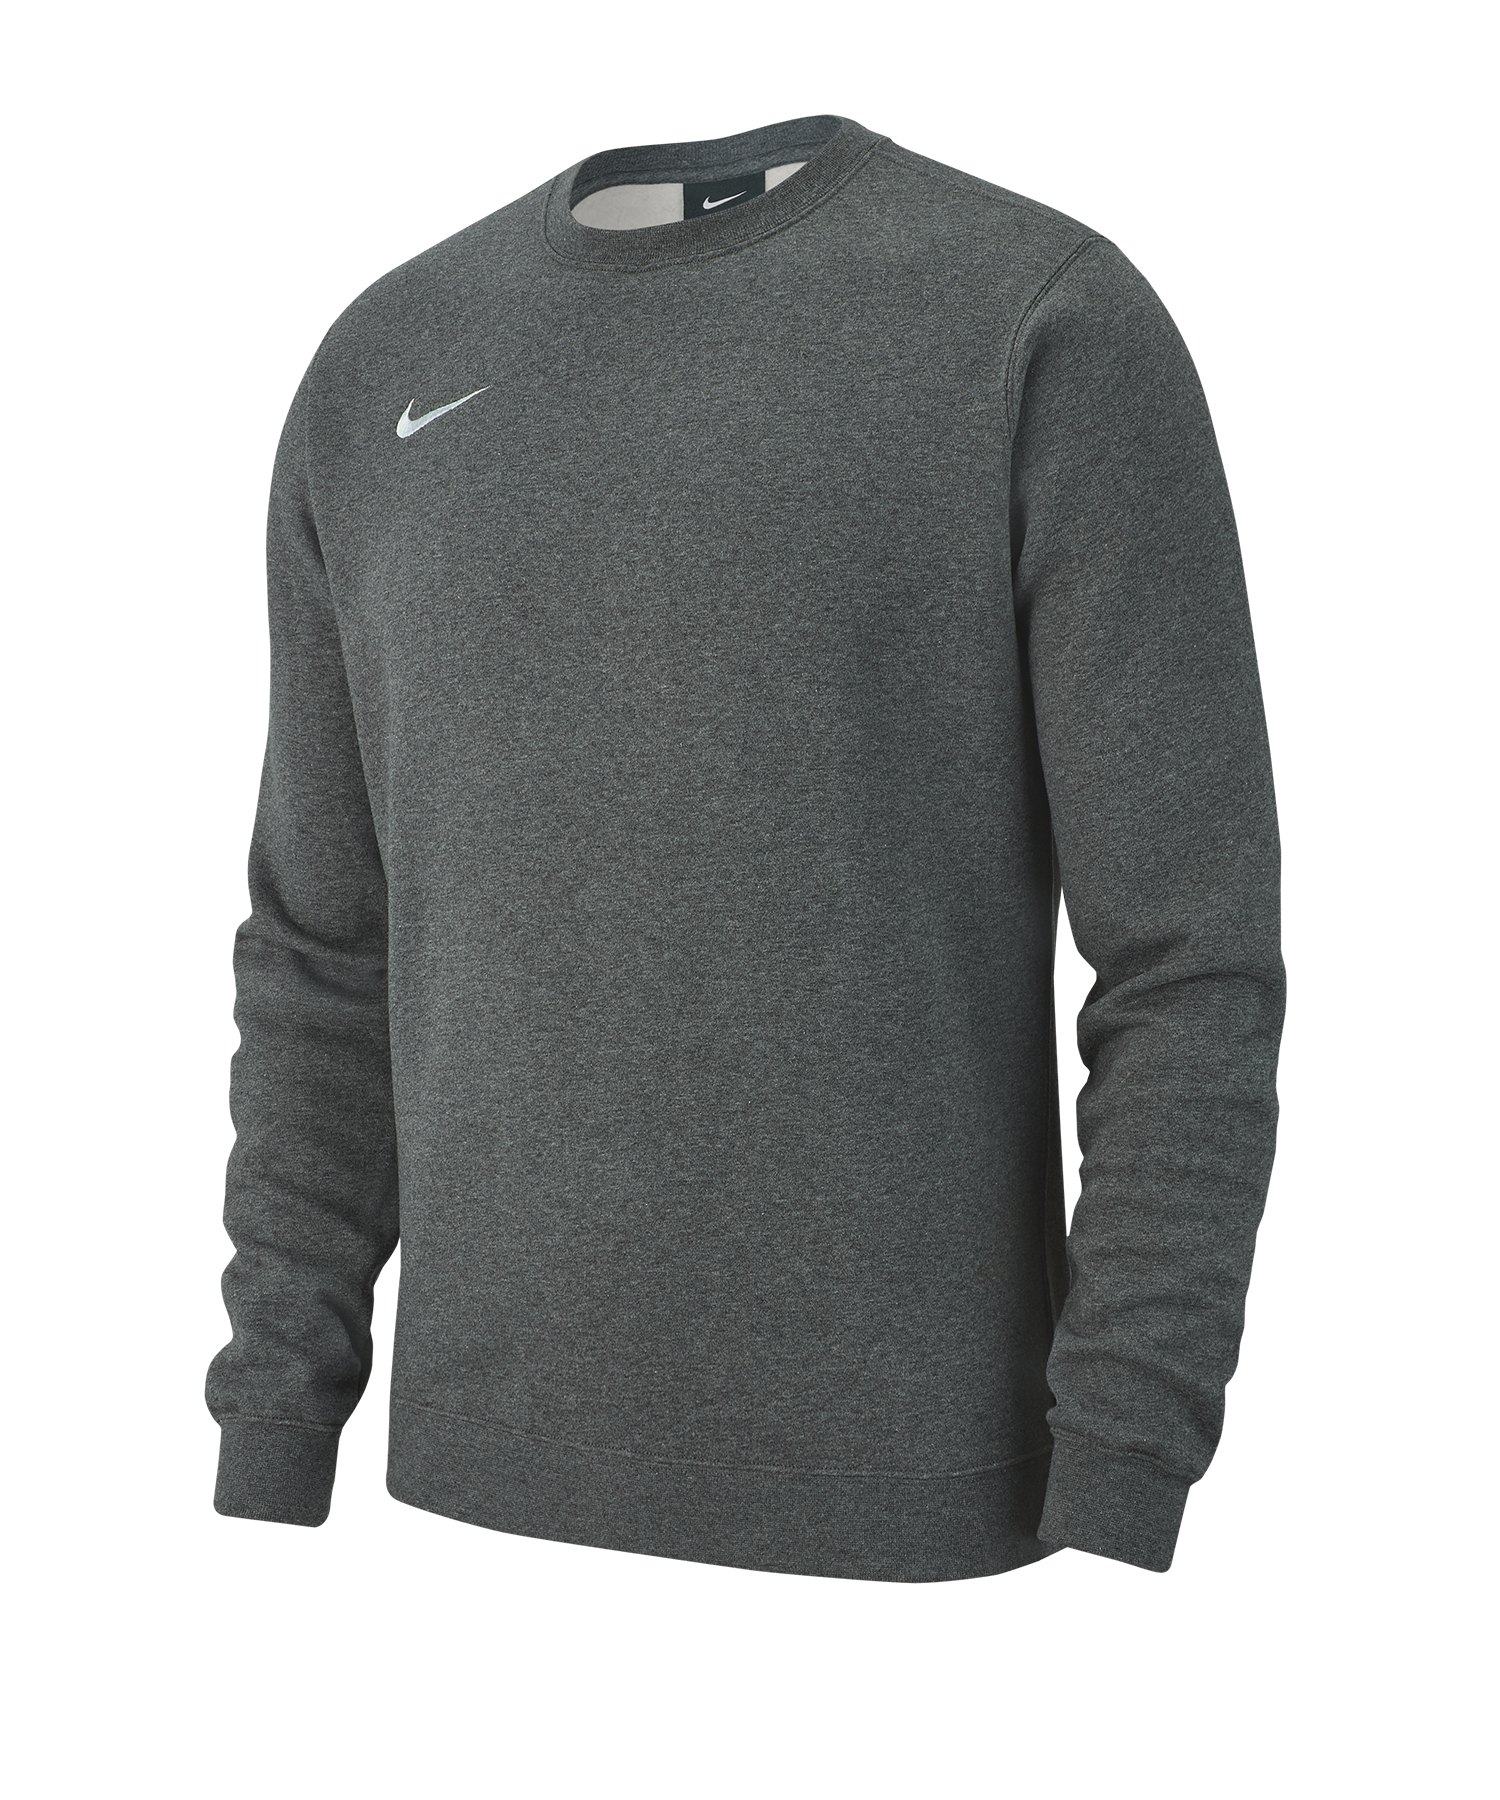 Nike Team Club 19 Fleece Sweatshirt Grau F071 - grau